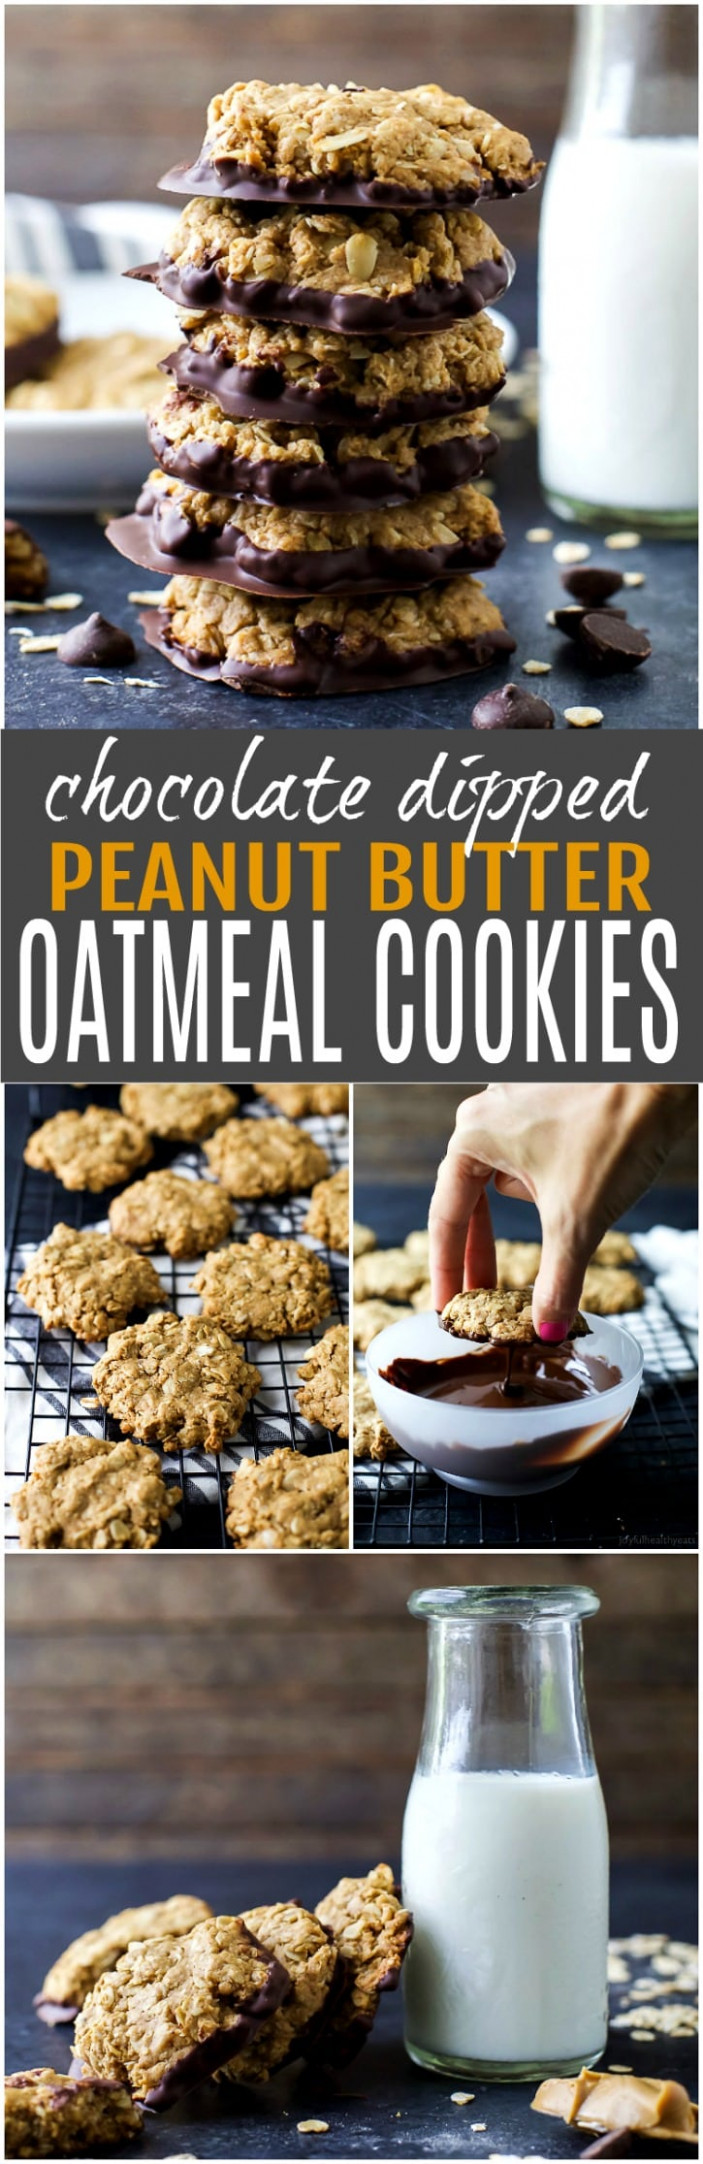 Chocolate Dipped Oatmeal Peanut Butter Cookies | Easy ...